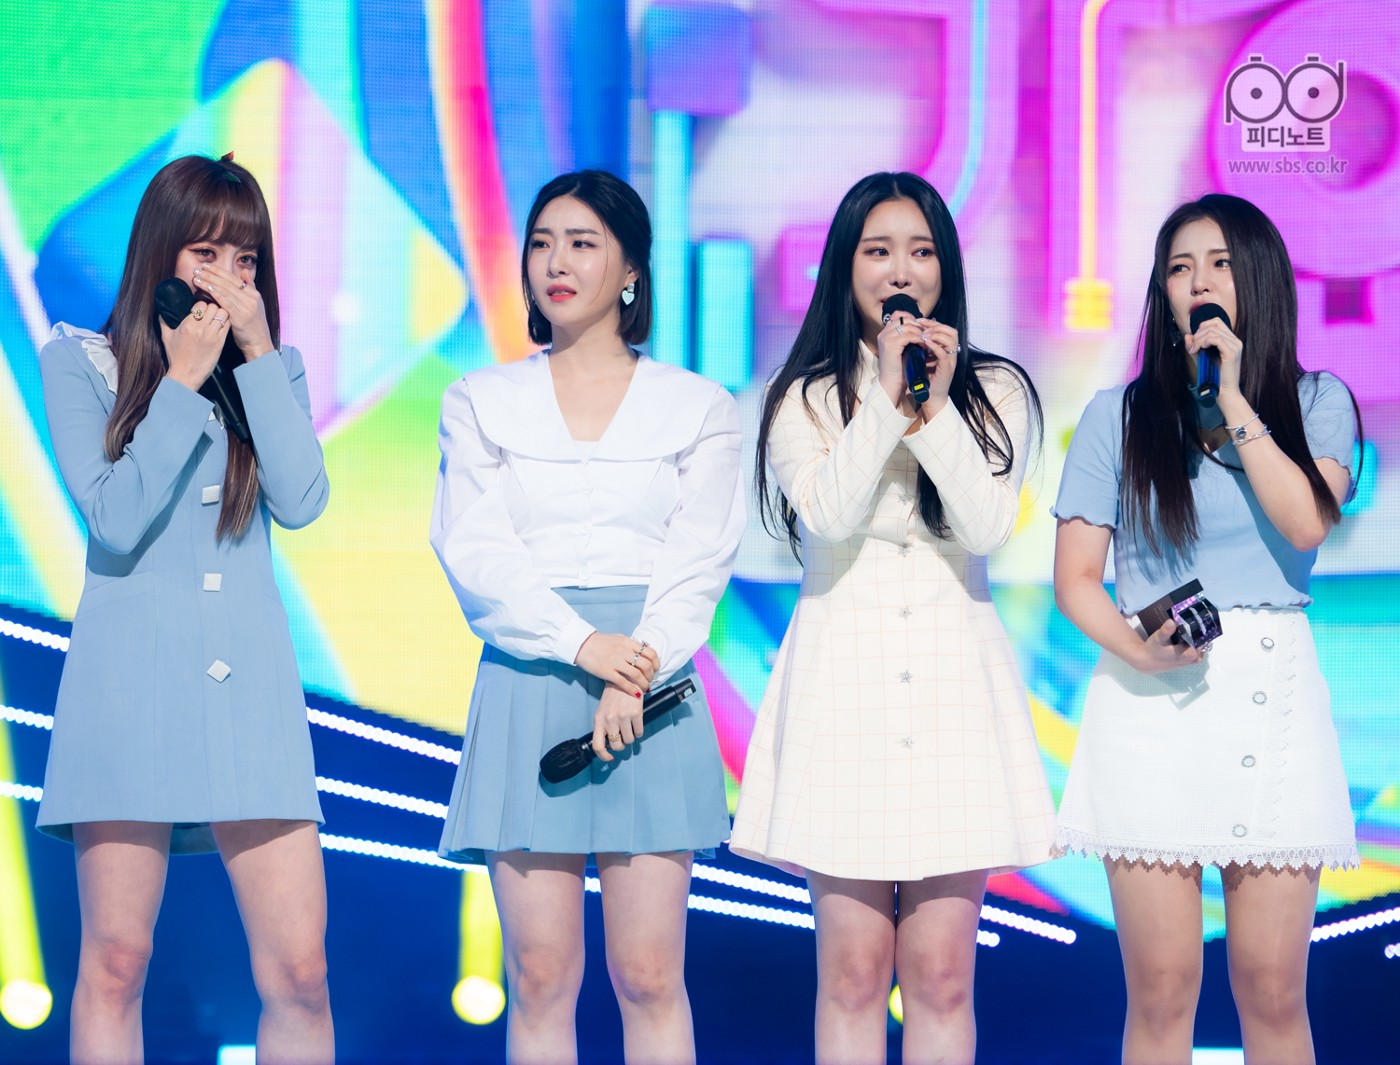 The four members of Brave Girls standing on stage holding mics and crying. One of them is holding a trophy.